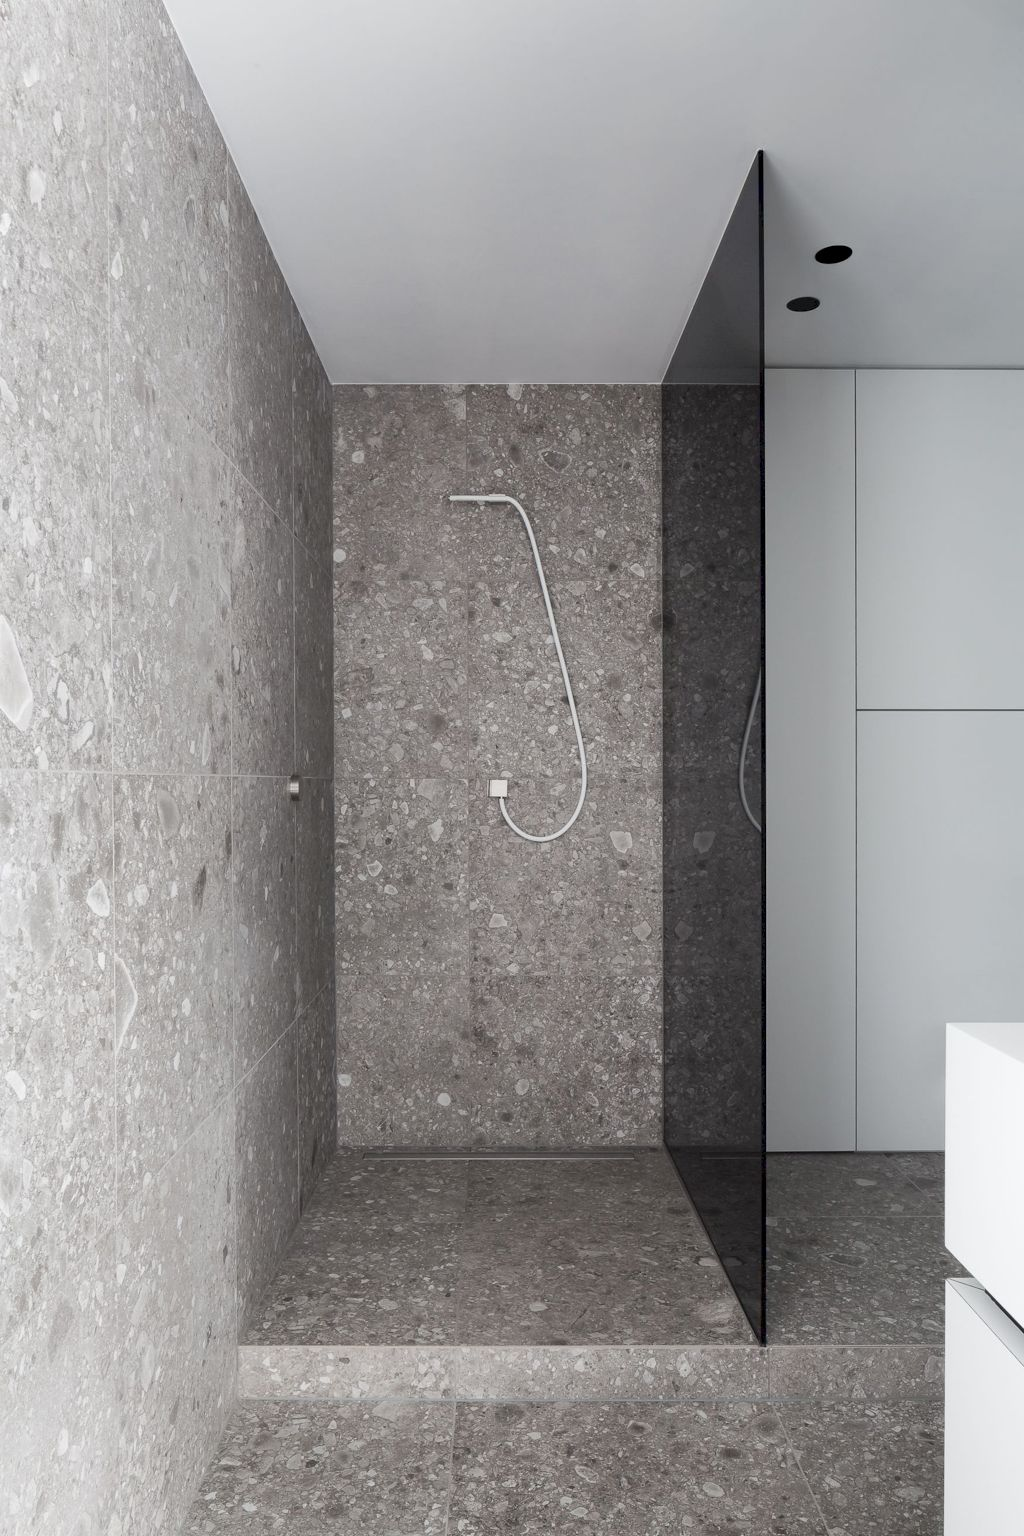 Terrazzo tiles used in bathroom renovation showing classical comeback that bring an artistic retro statement in your home Image 44